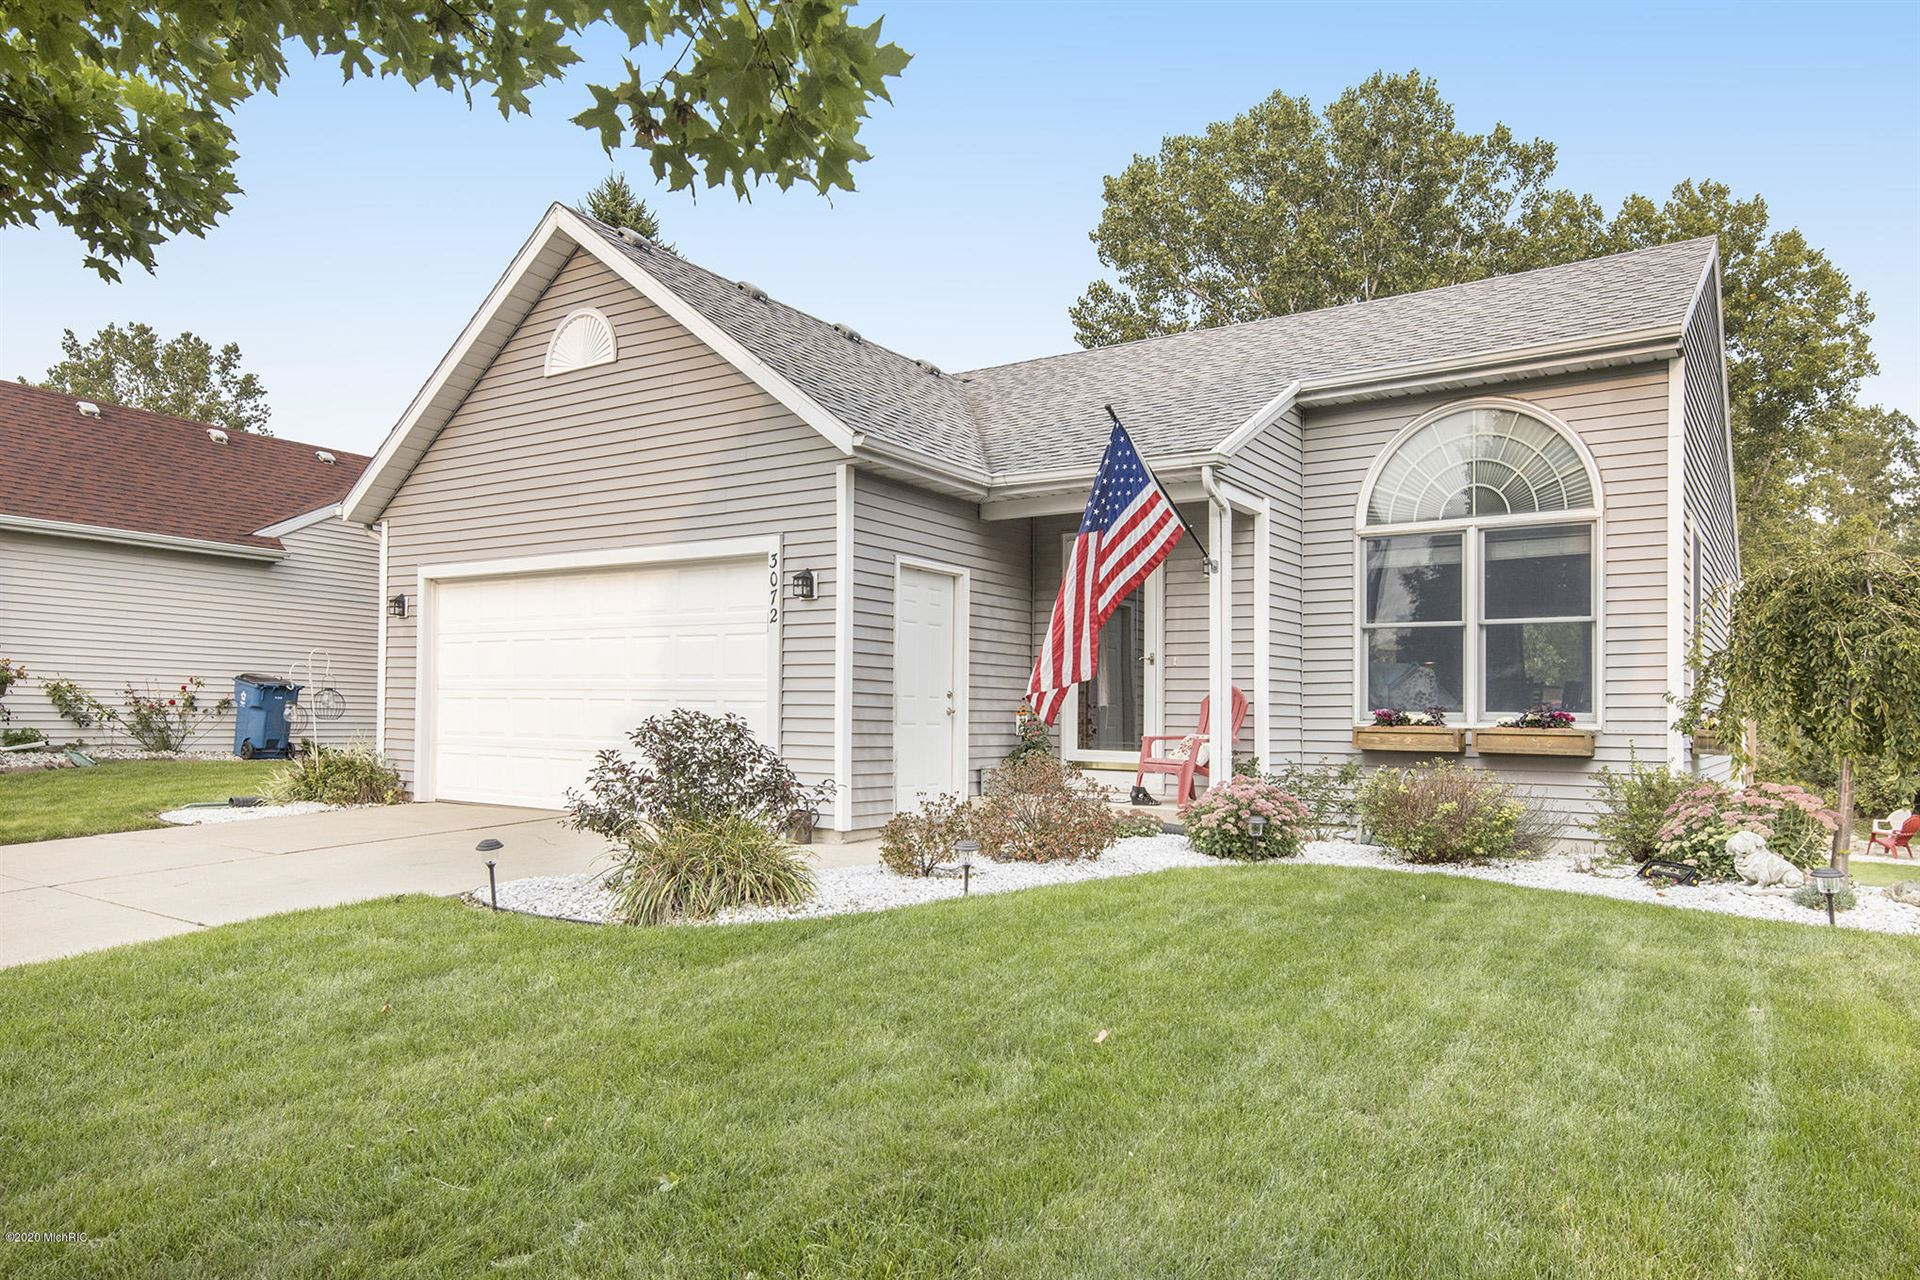 Photo of 3072 Roberts Way, Holland, MI 49424 (MLS # 20038712)